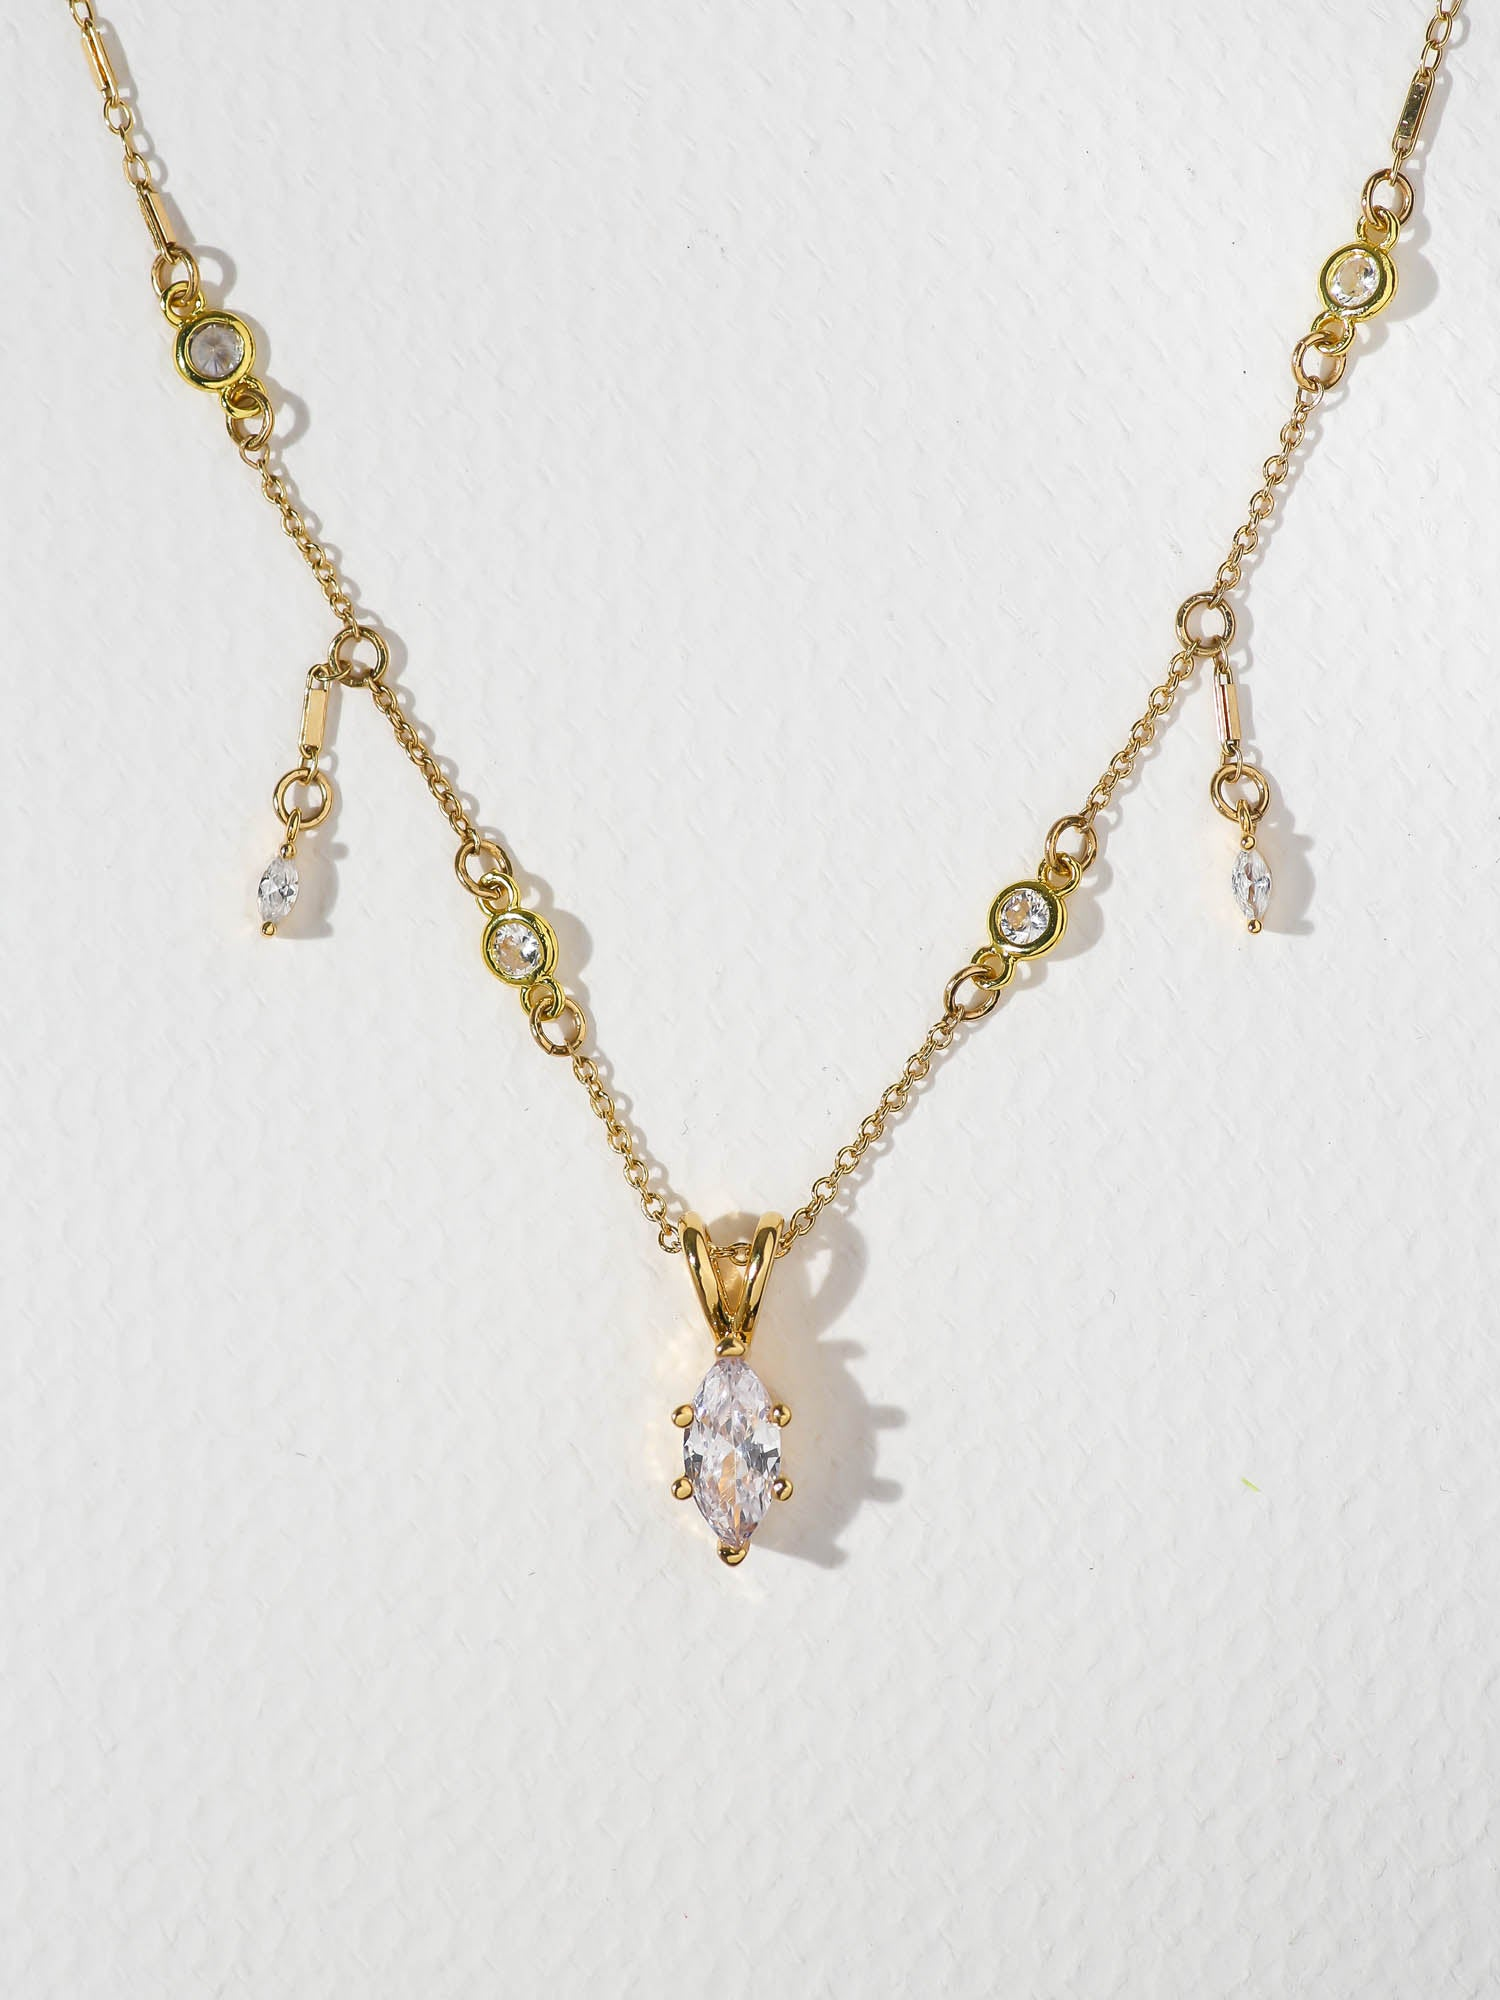 The Tiana Necklace